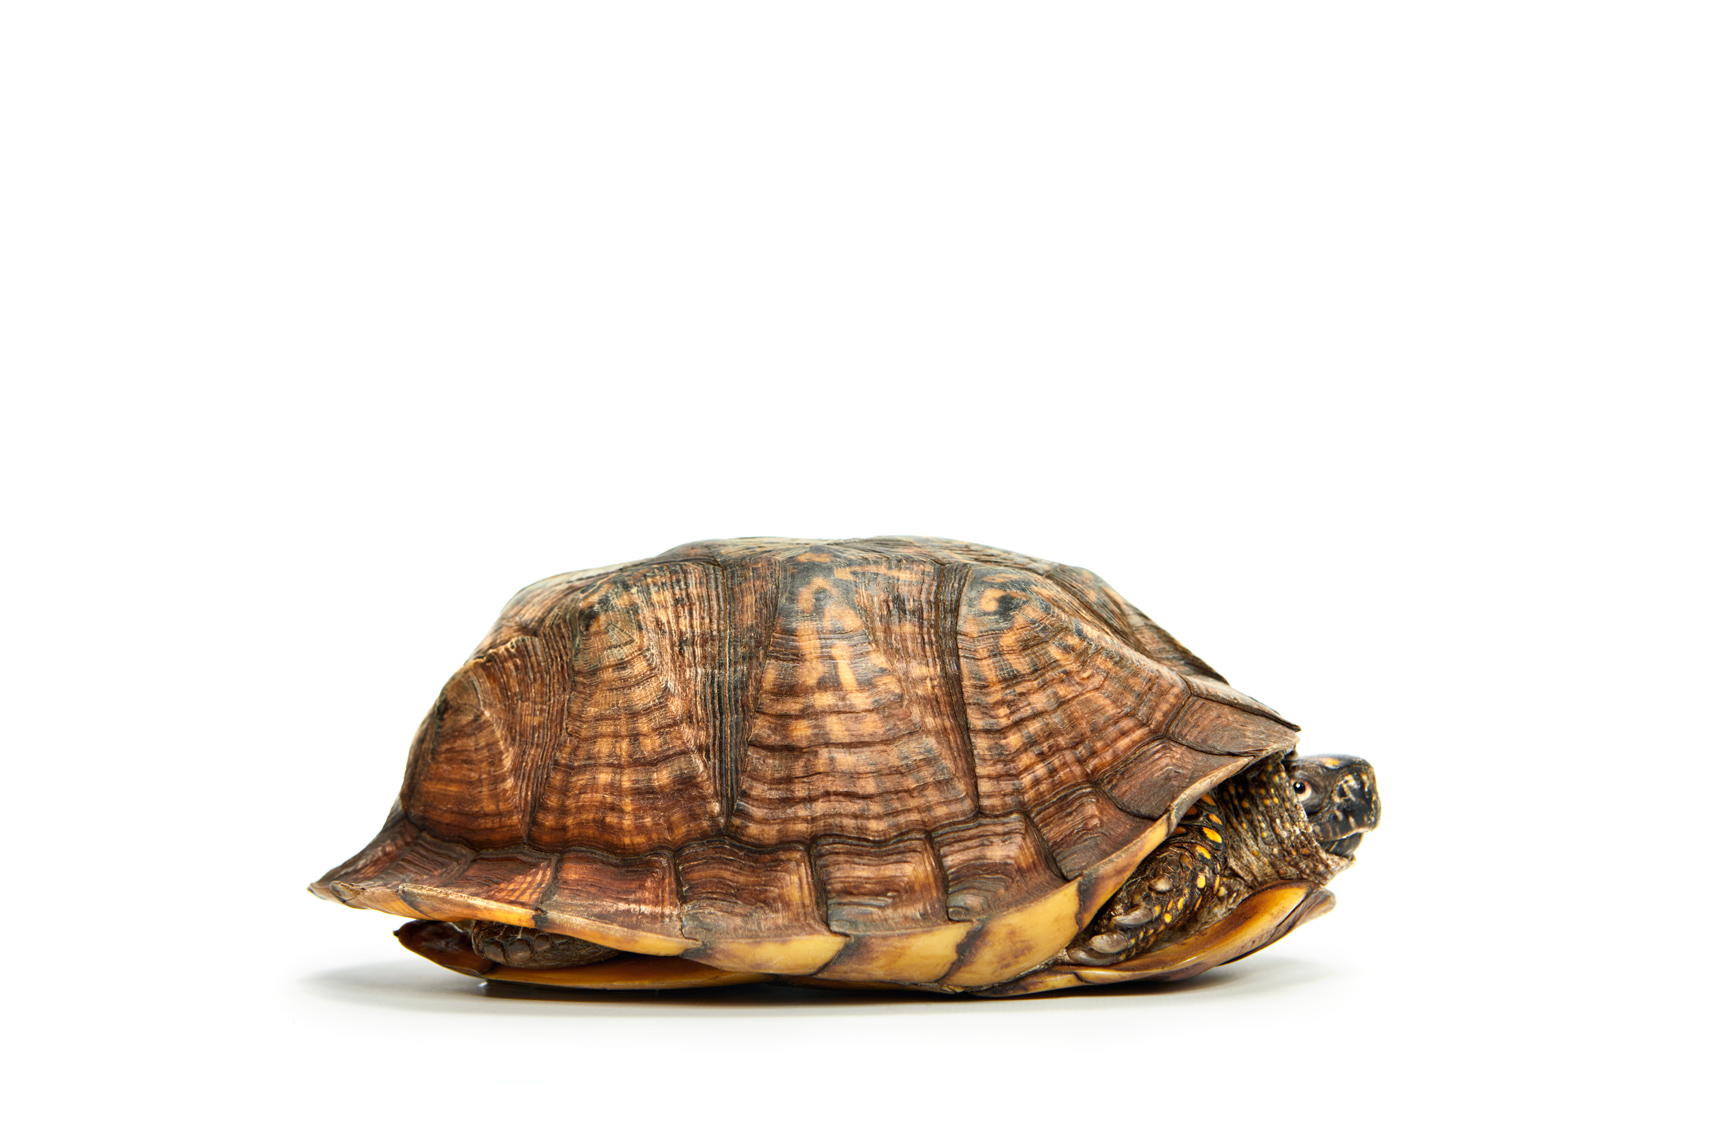 A turtle in shell with head out